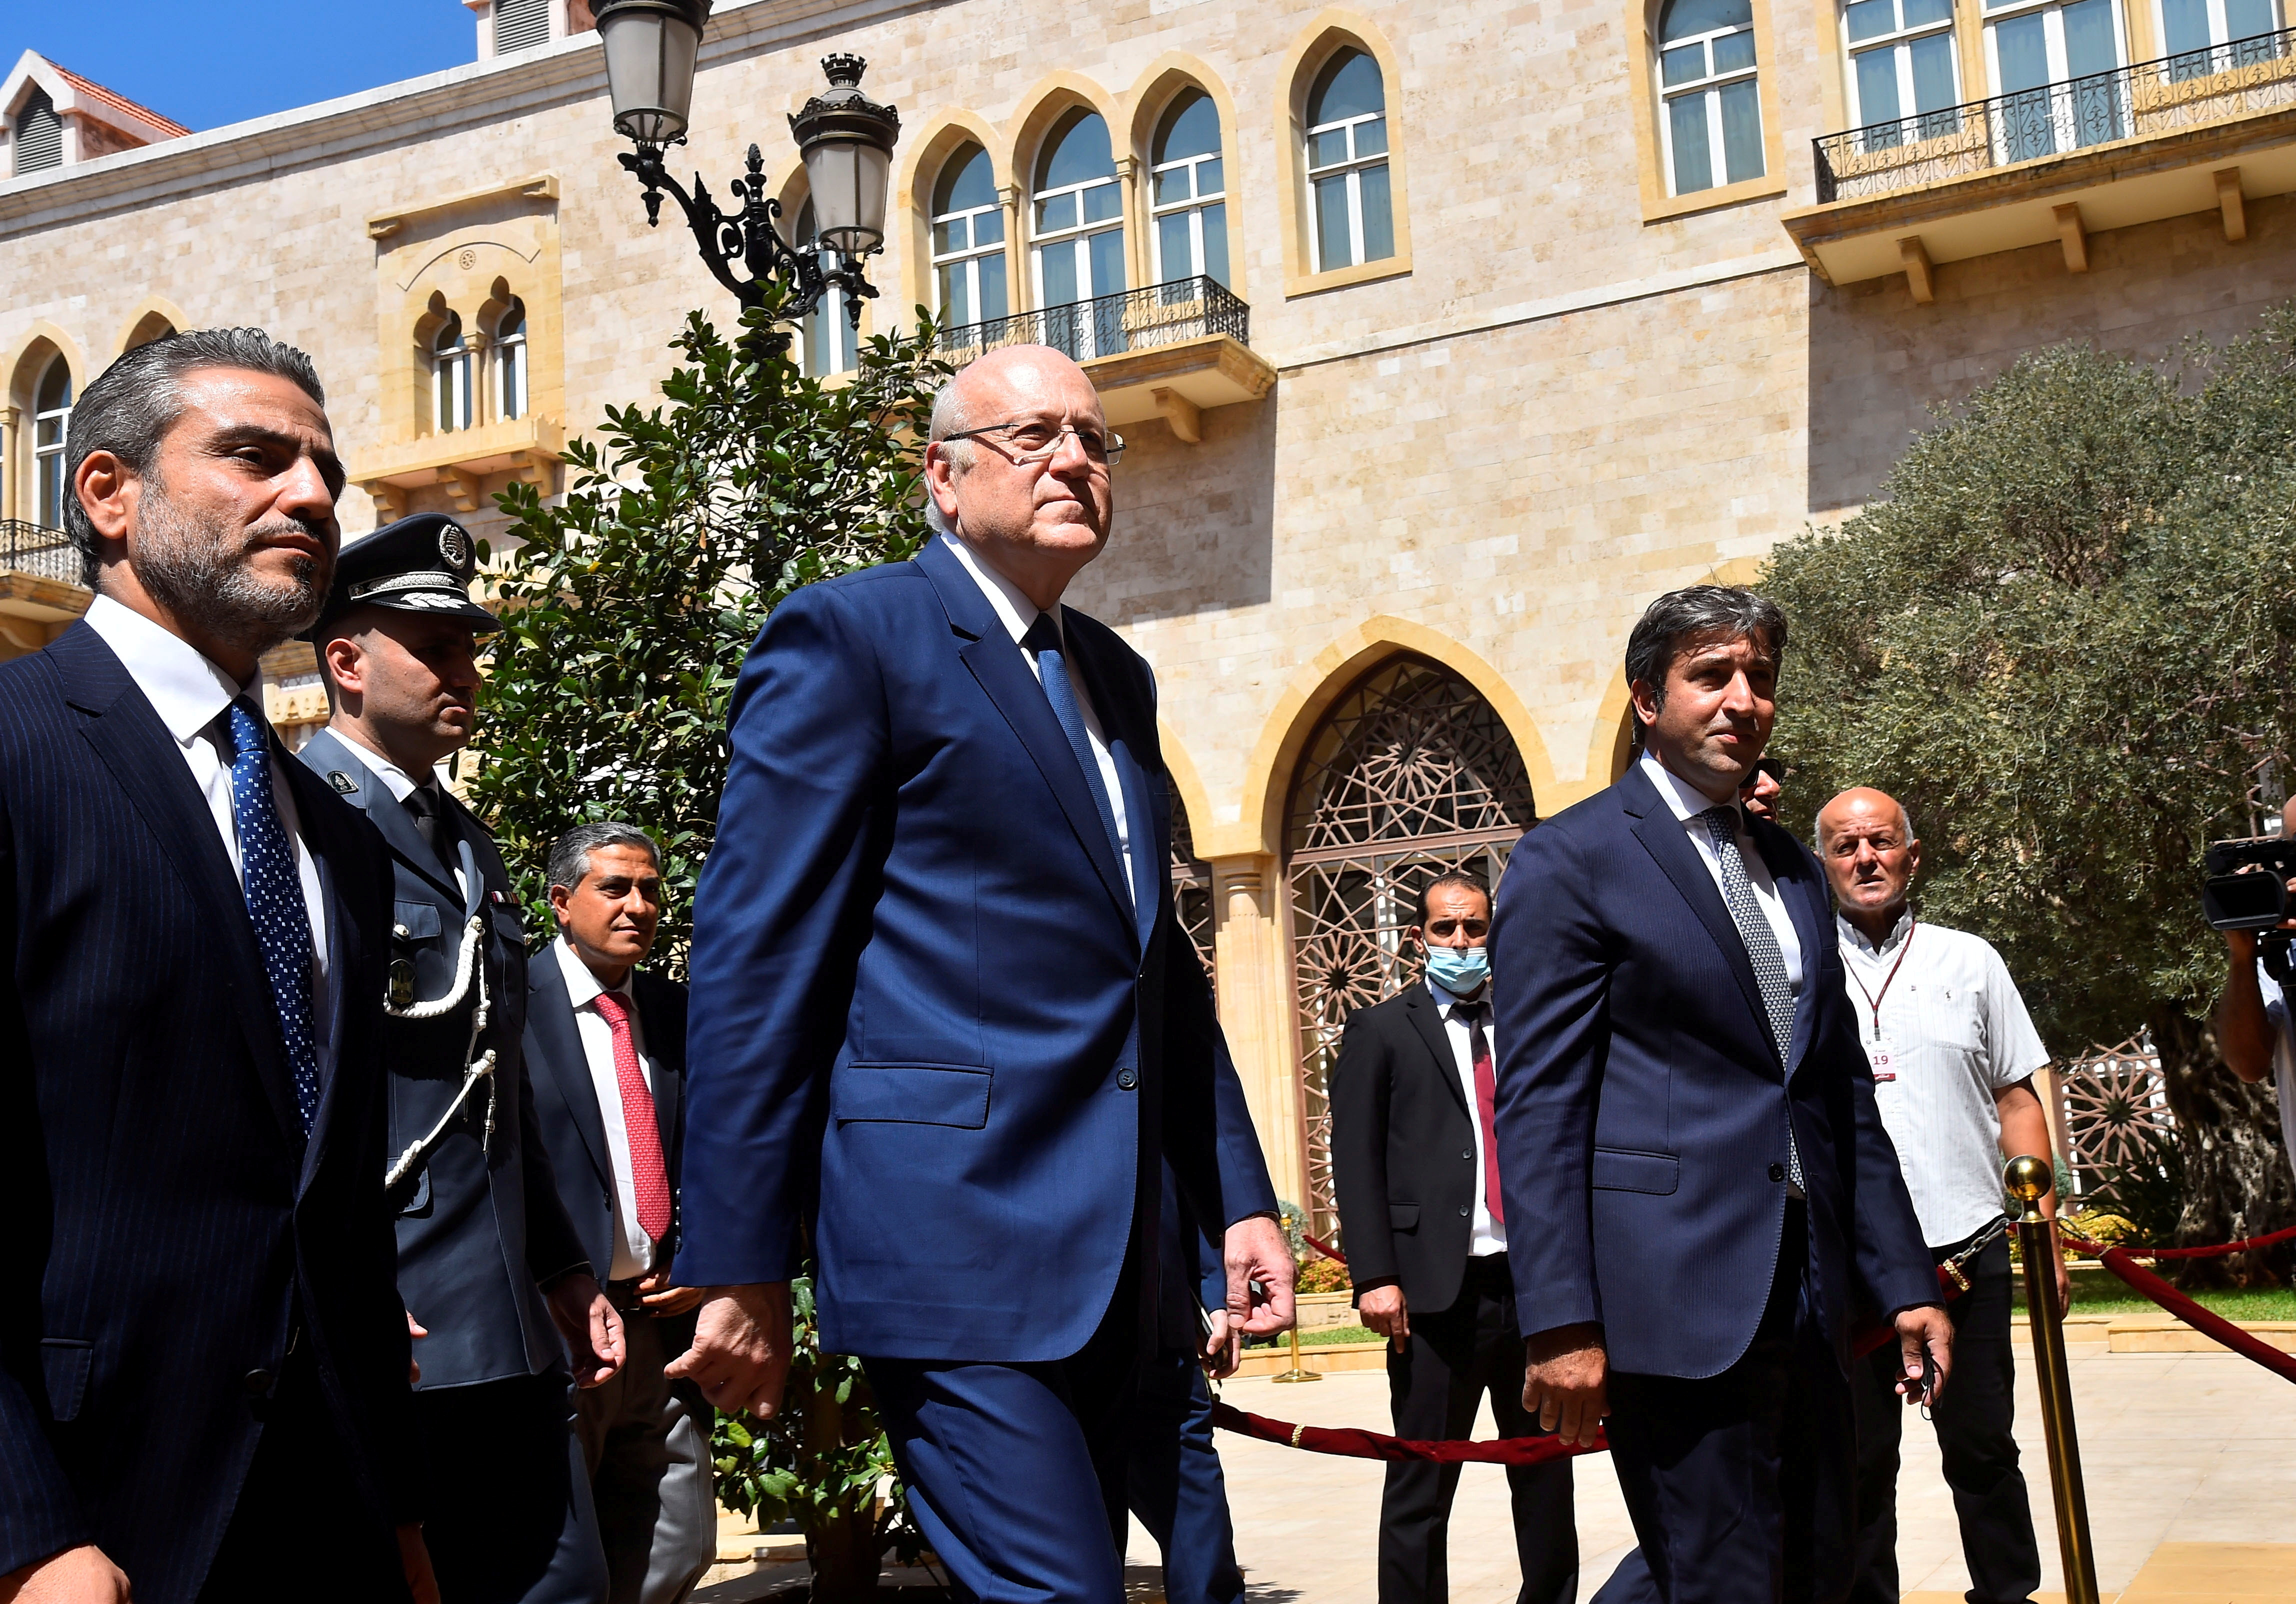 Lebanon's new Prime Minister Najib Mikati walks during an official ceremony to mark his assumption of duties at the Government Palace in Beirut, Lebanon September 13, 2021. Dalati Nohra/Handout via REUTERS